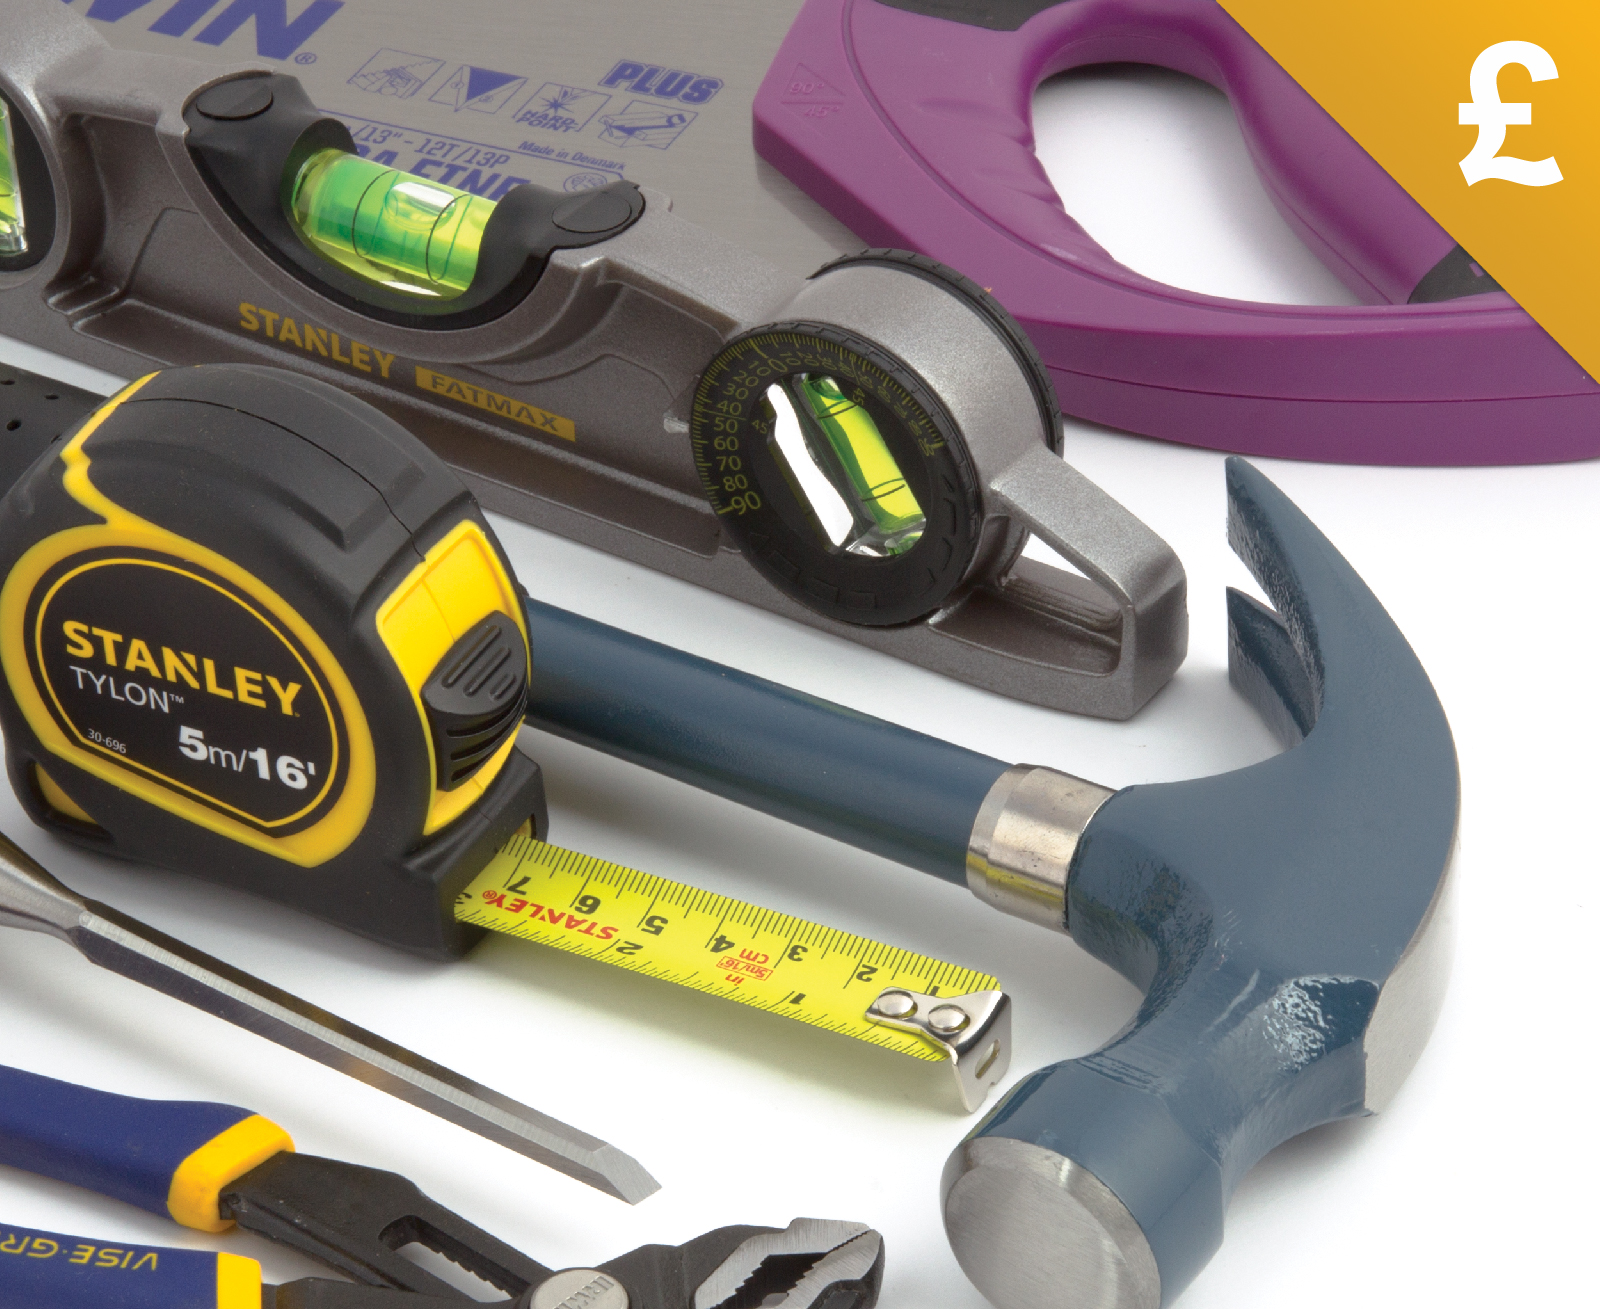 Tools and Consumables Clearance